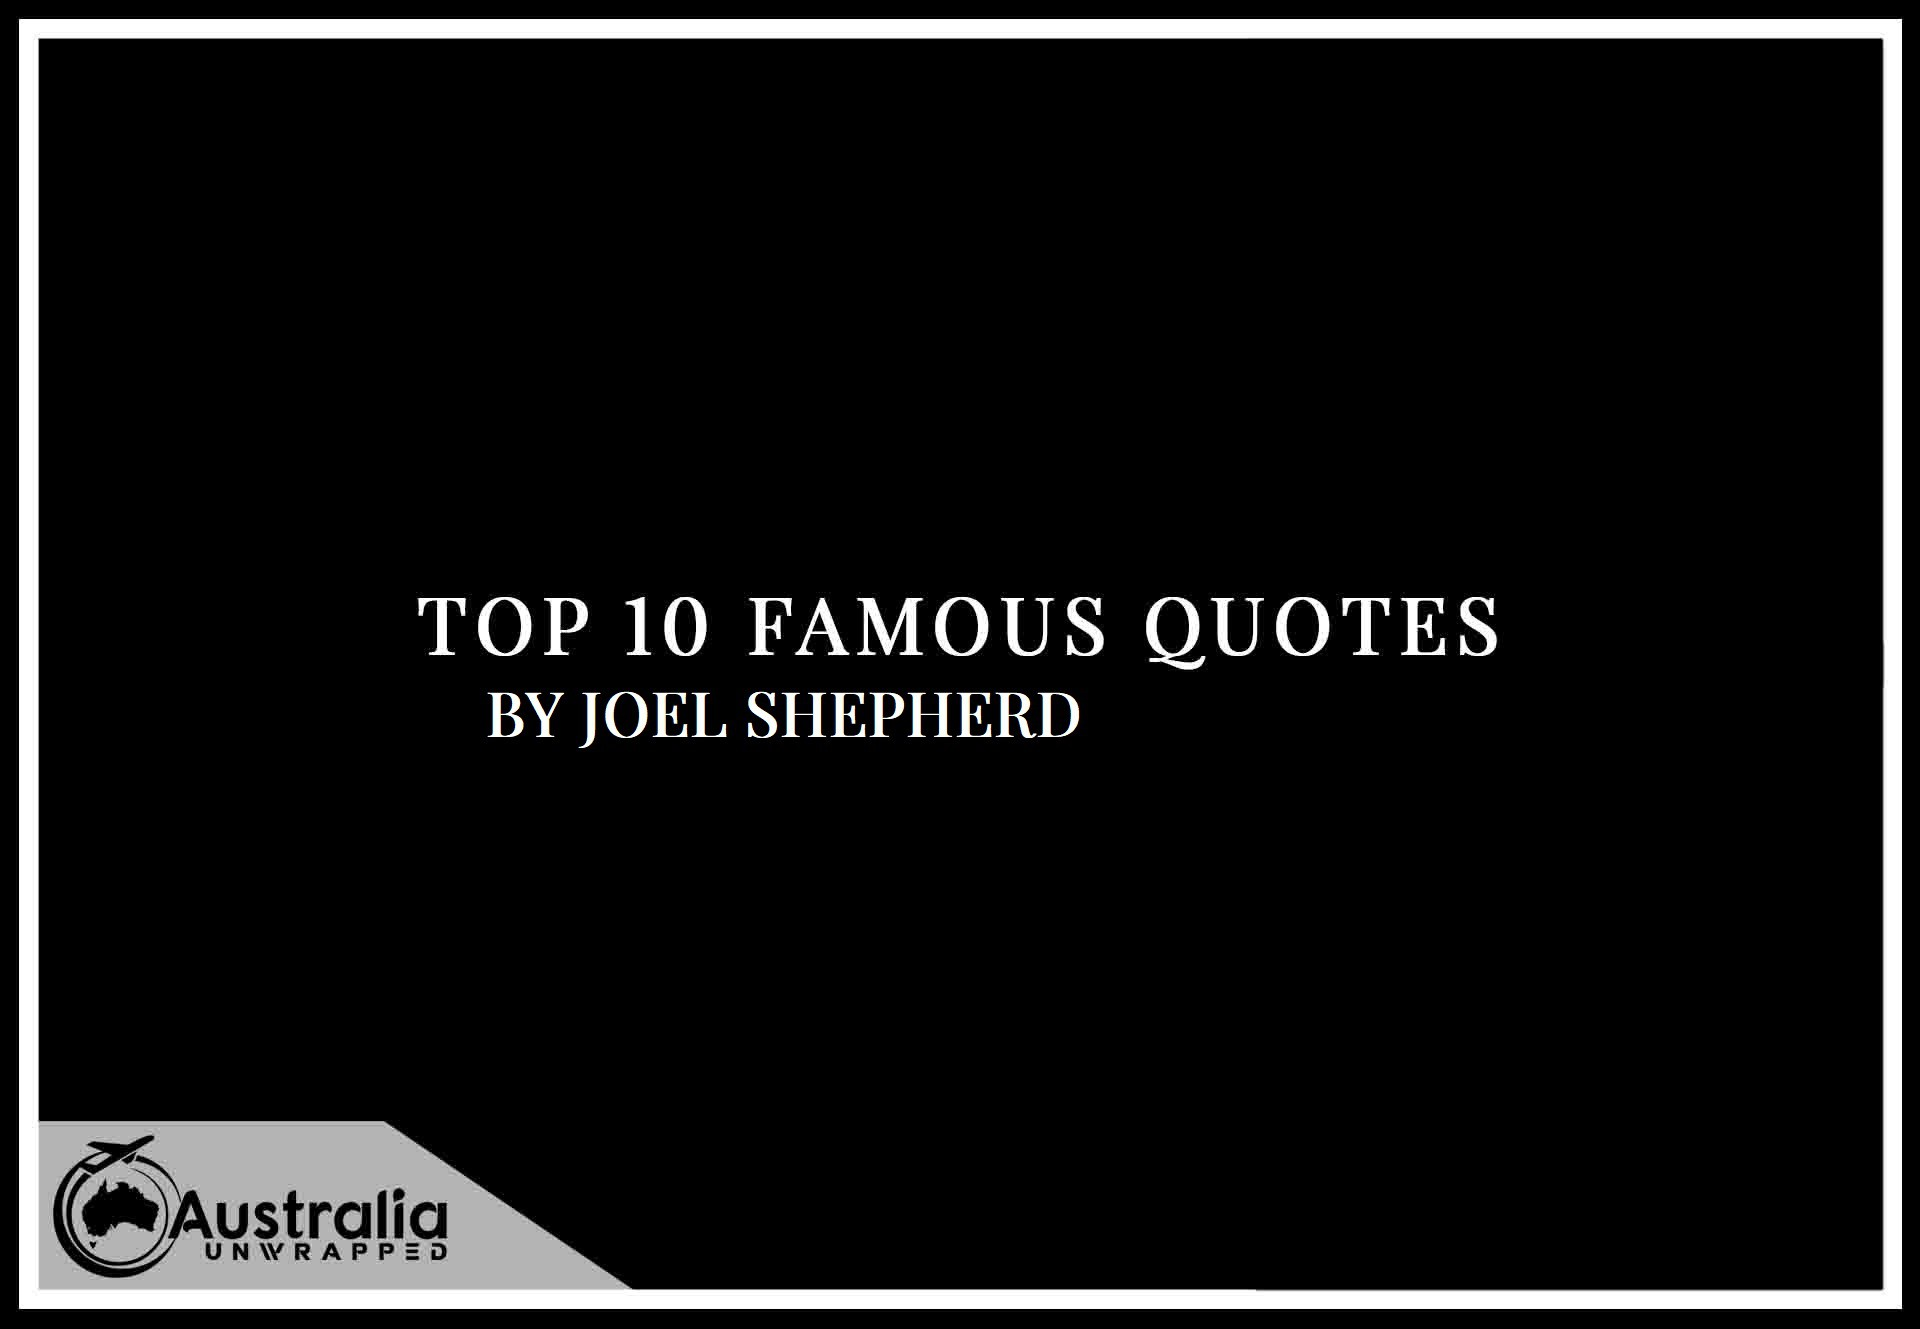 Top 10 Famous Quotes by Author Joel Shepherd